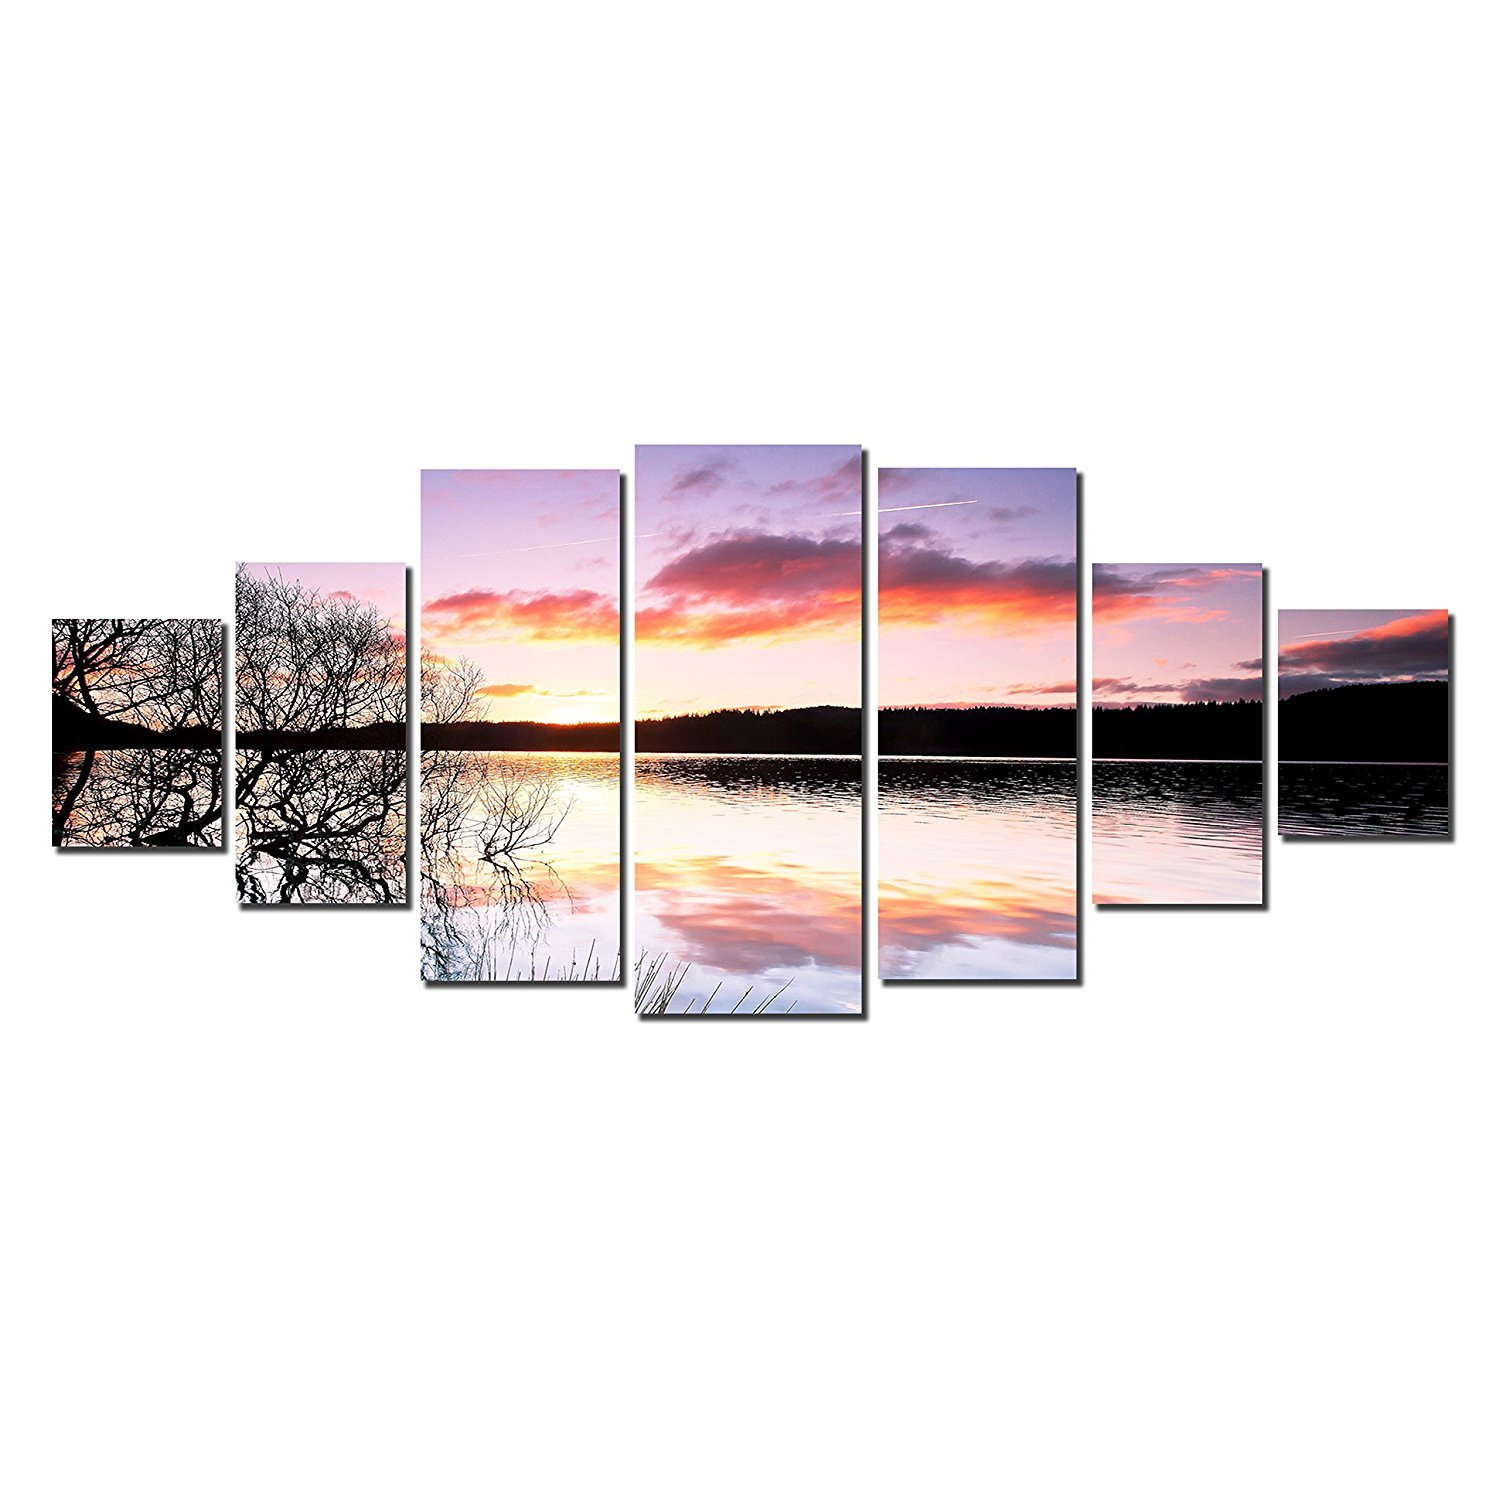 Startonight Glow in the Dark, Huge Canvas Wall Art Sunset On The Lake Home Decor, Dual View Surprise Artwork Modern Framed Wall Art Set of 7 Panels Total 39.37 x 94.49 inch